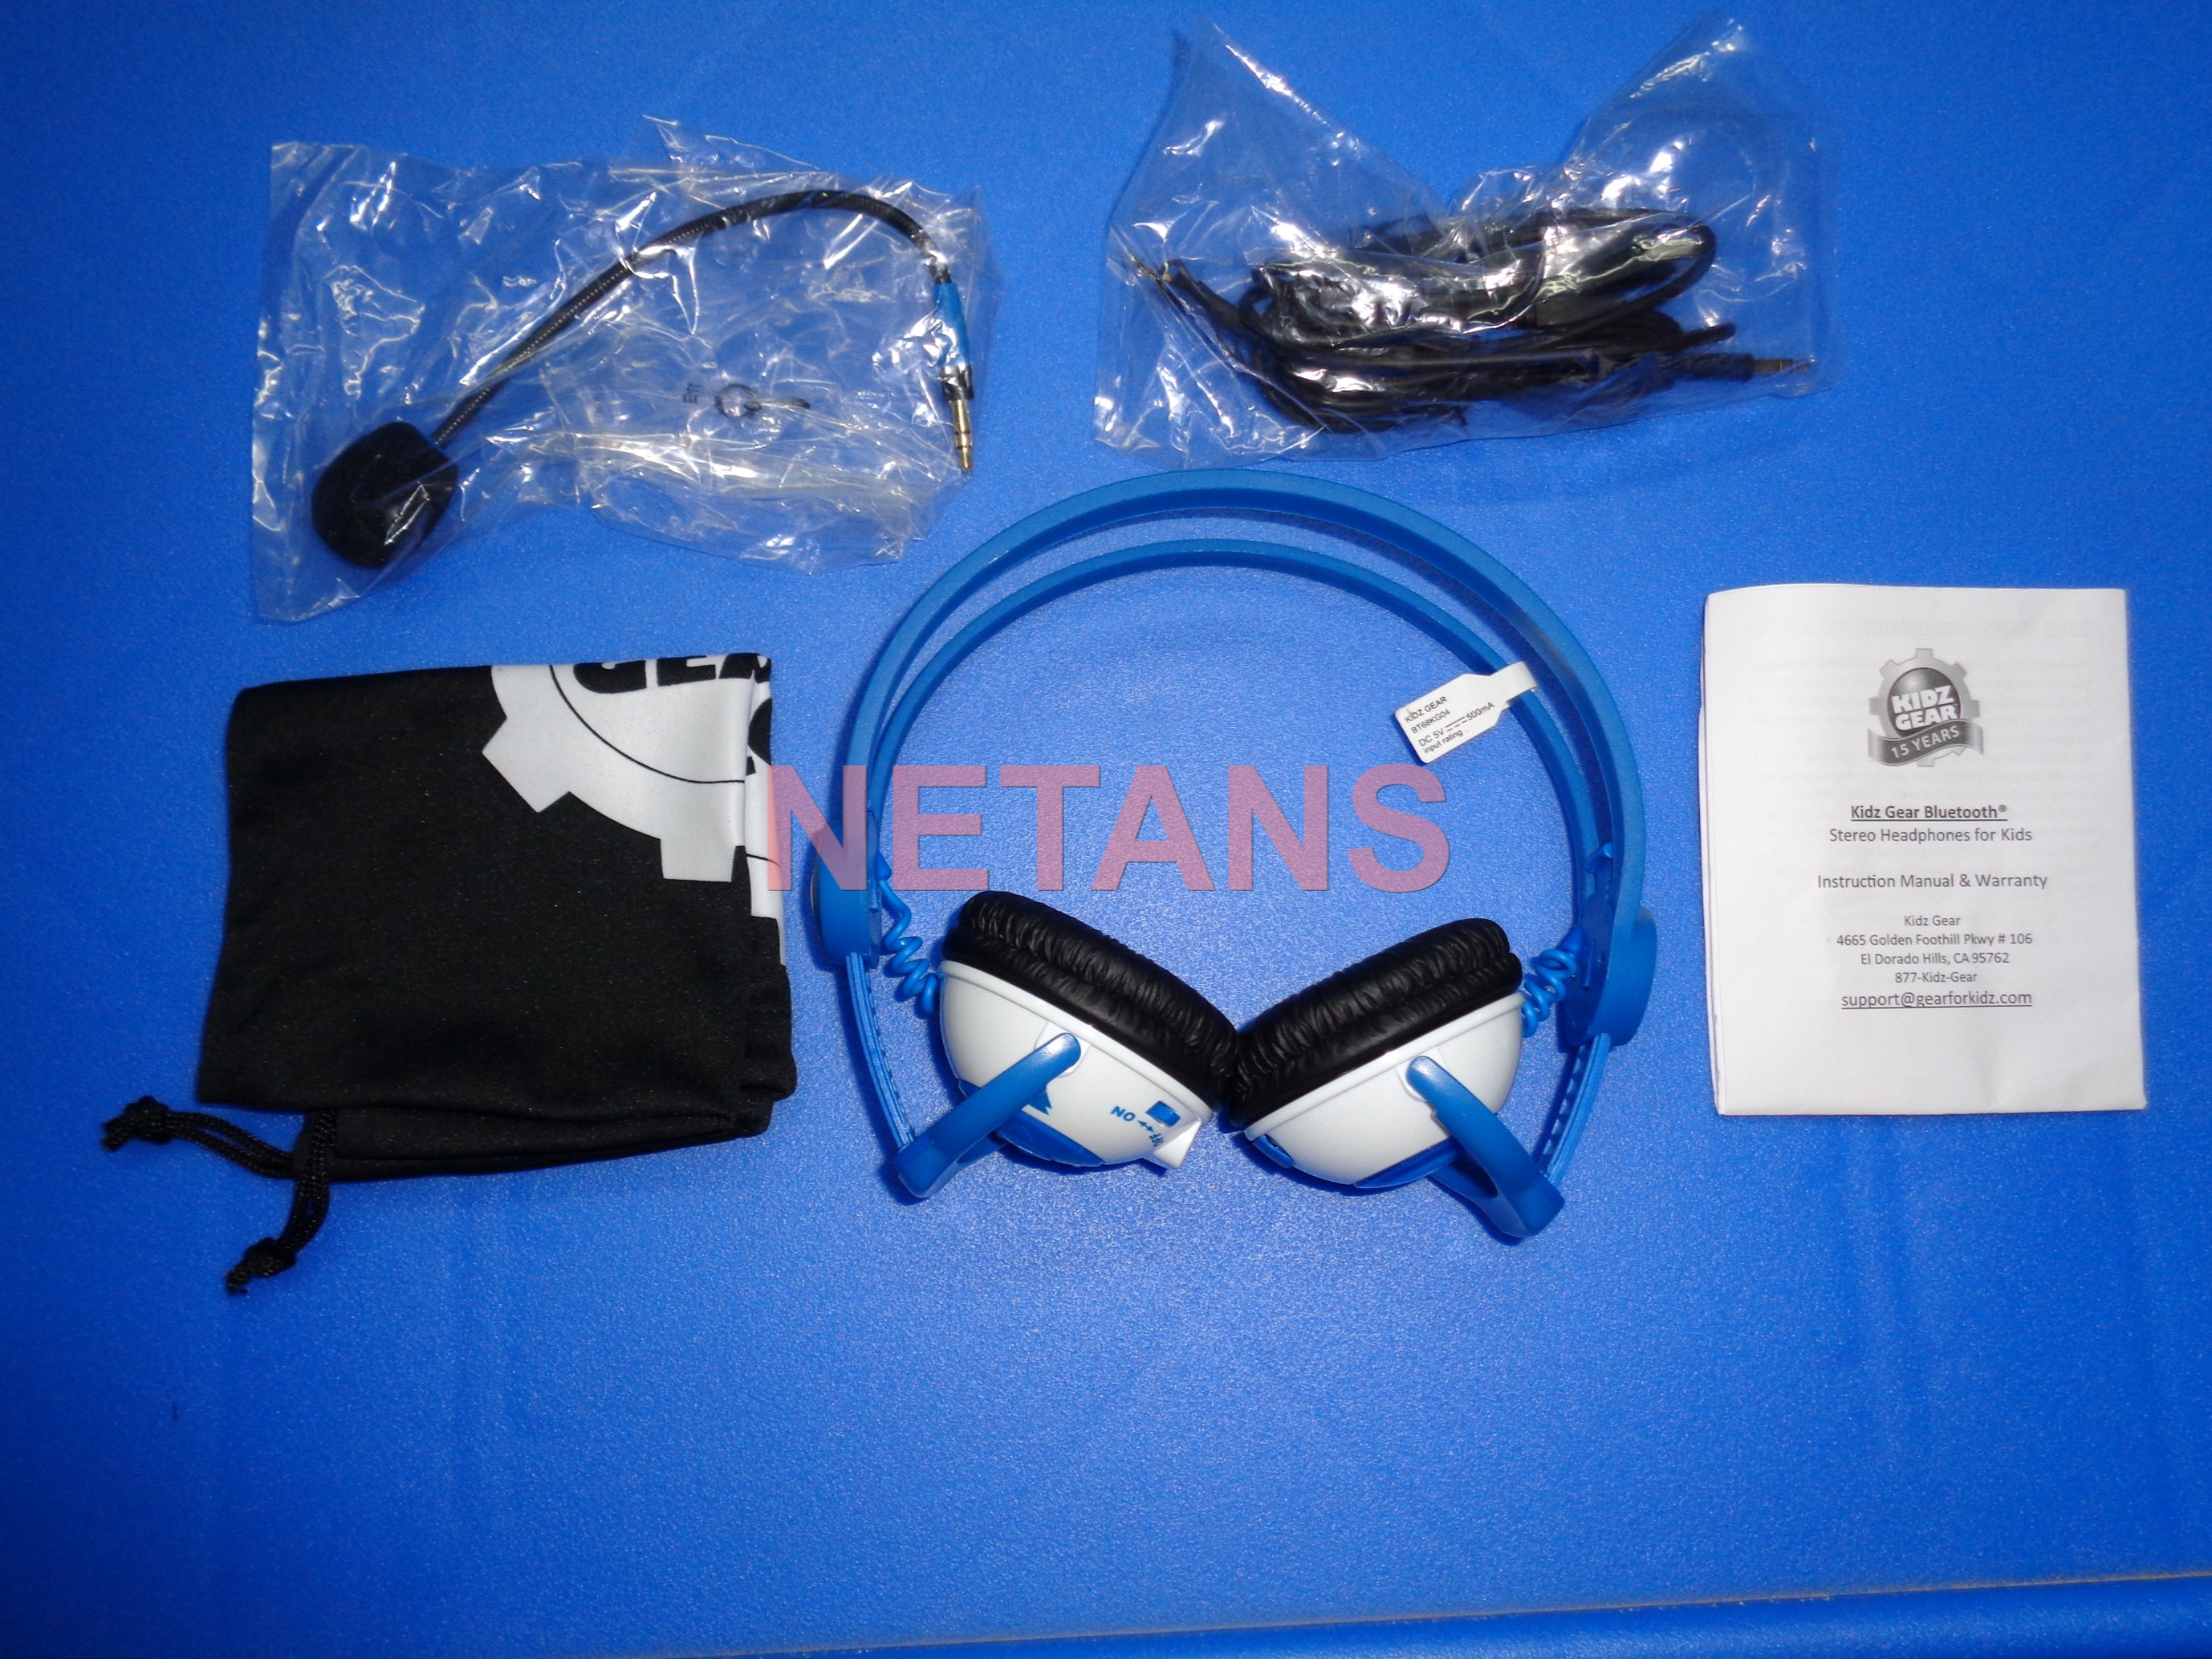 Kidz Gear Bluetooth Headphone Unboxing Snapshot